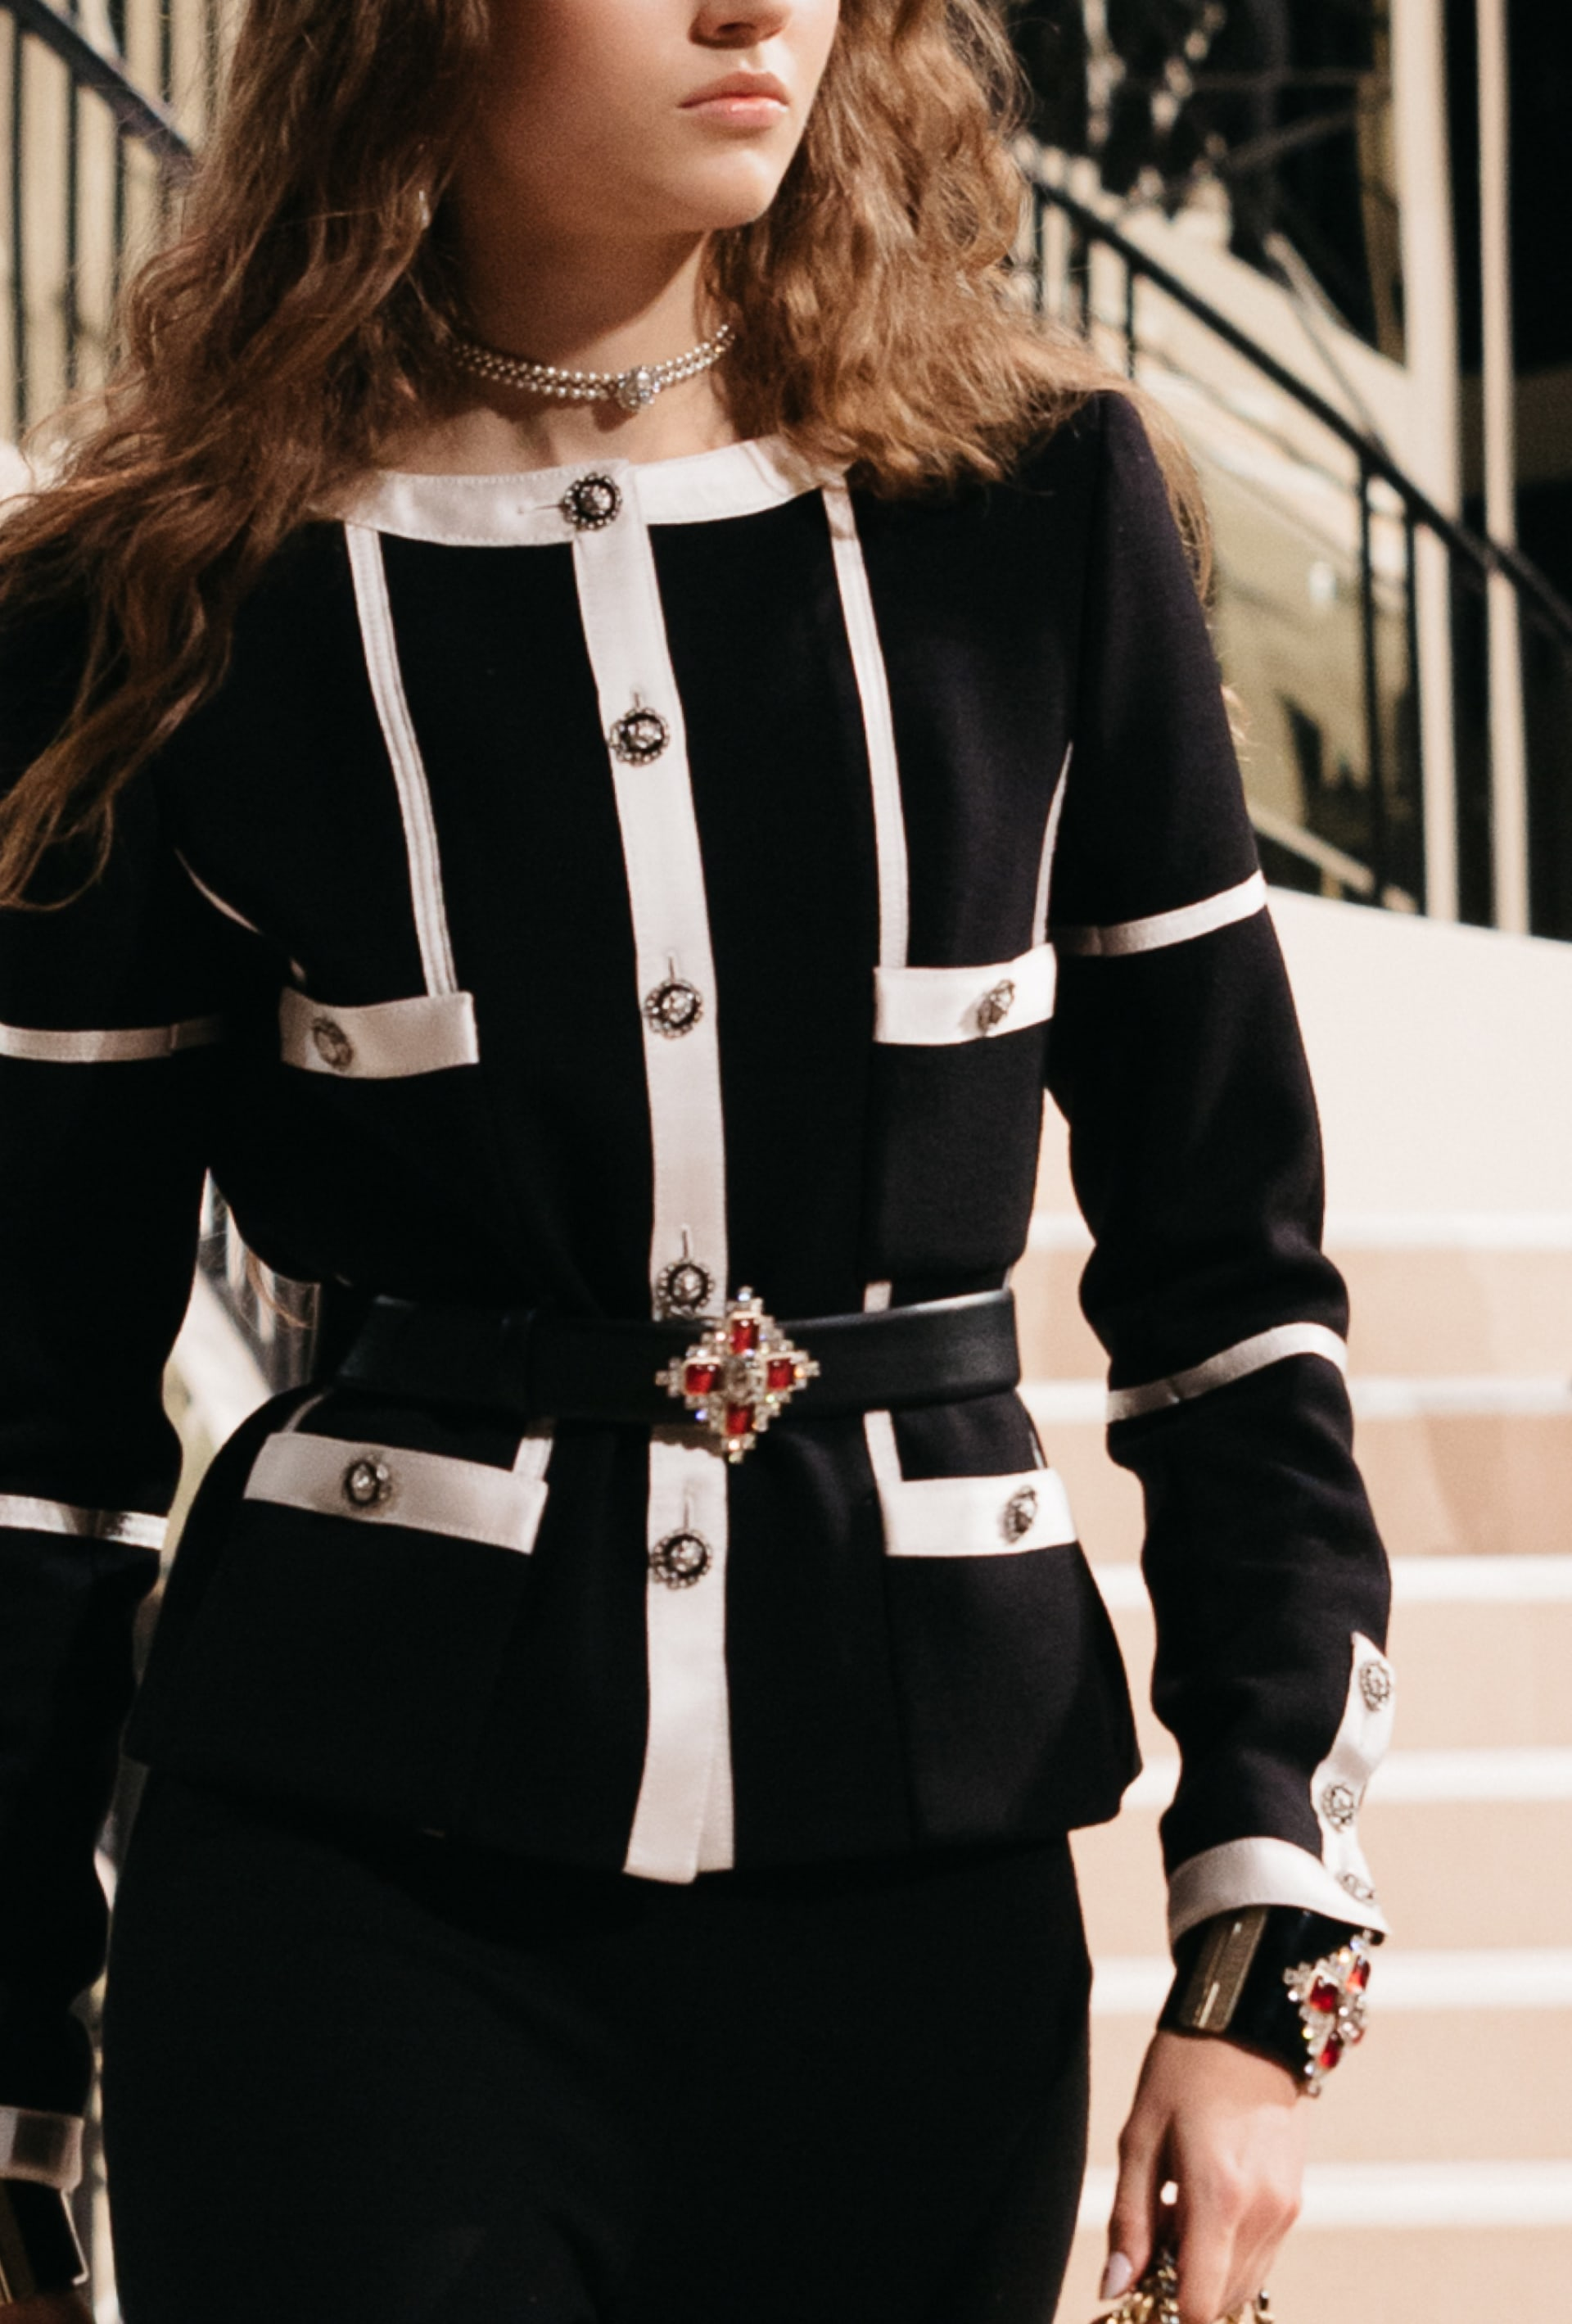 Additional image 1 - Look  9 -  - Métiers d'Art 2019/20